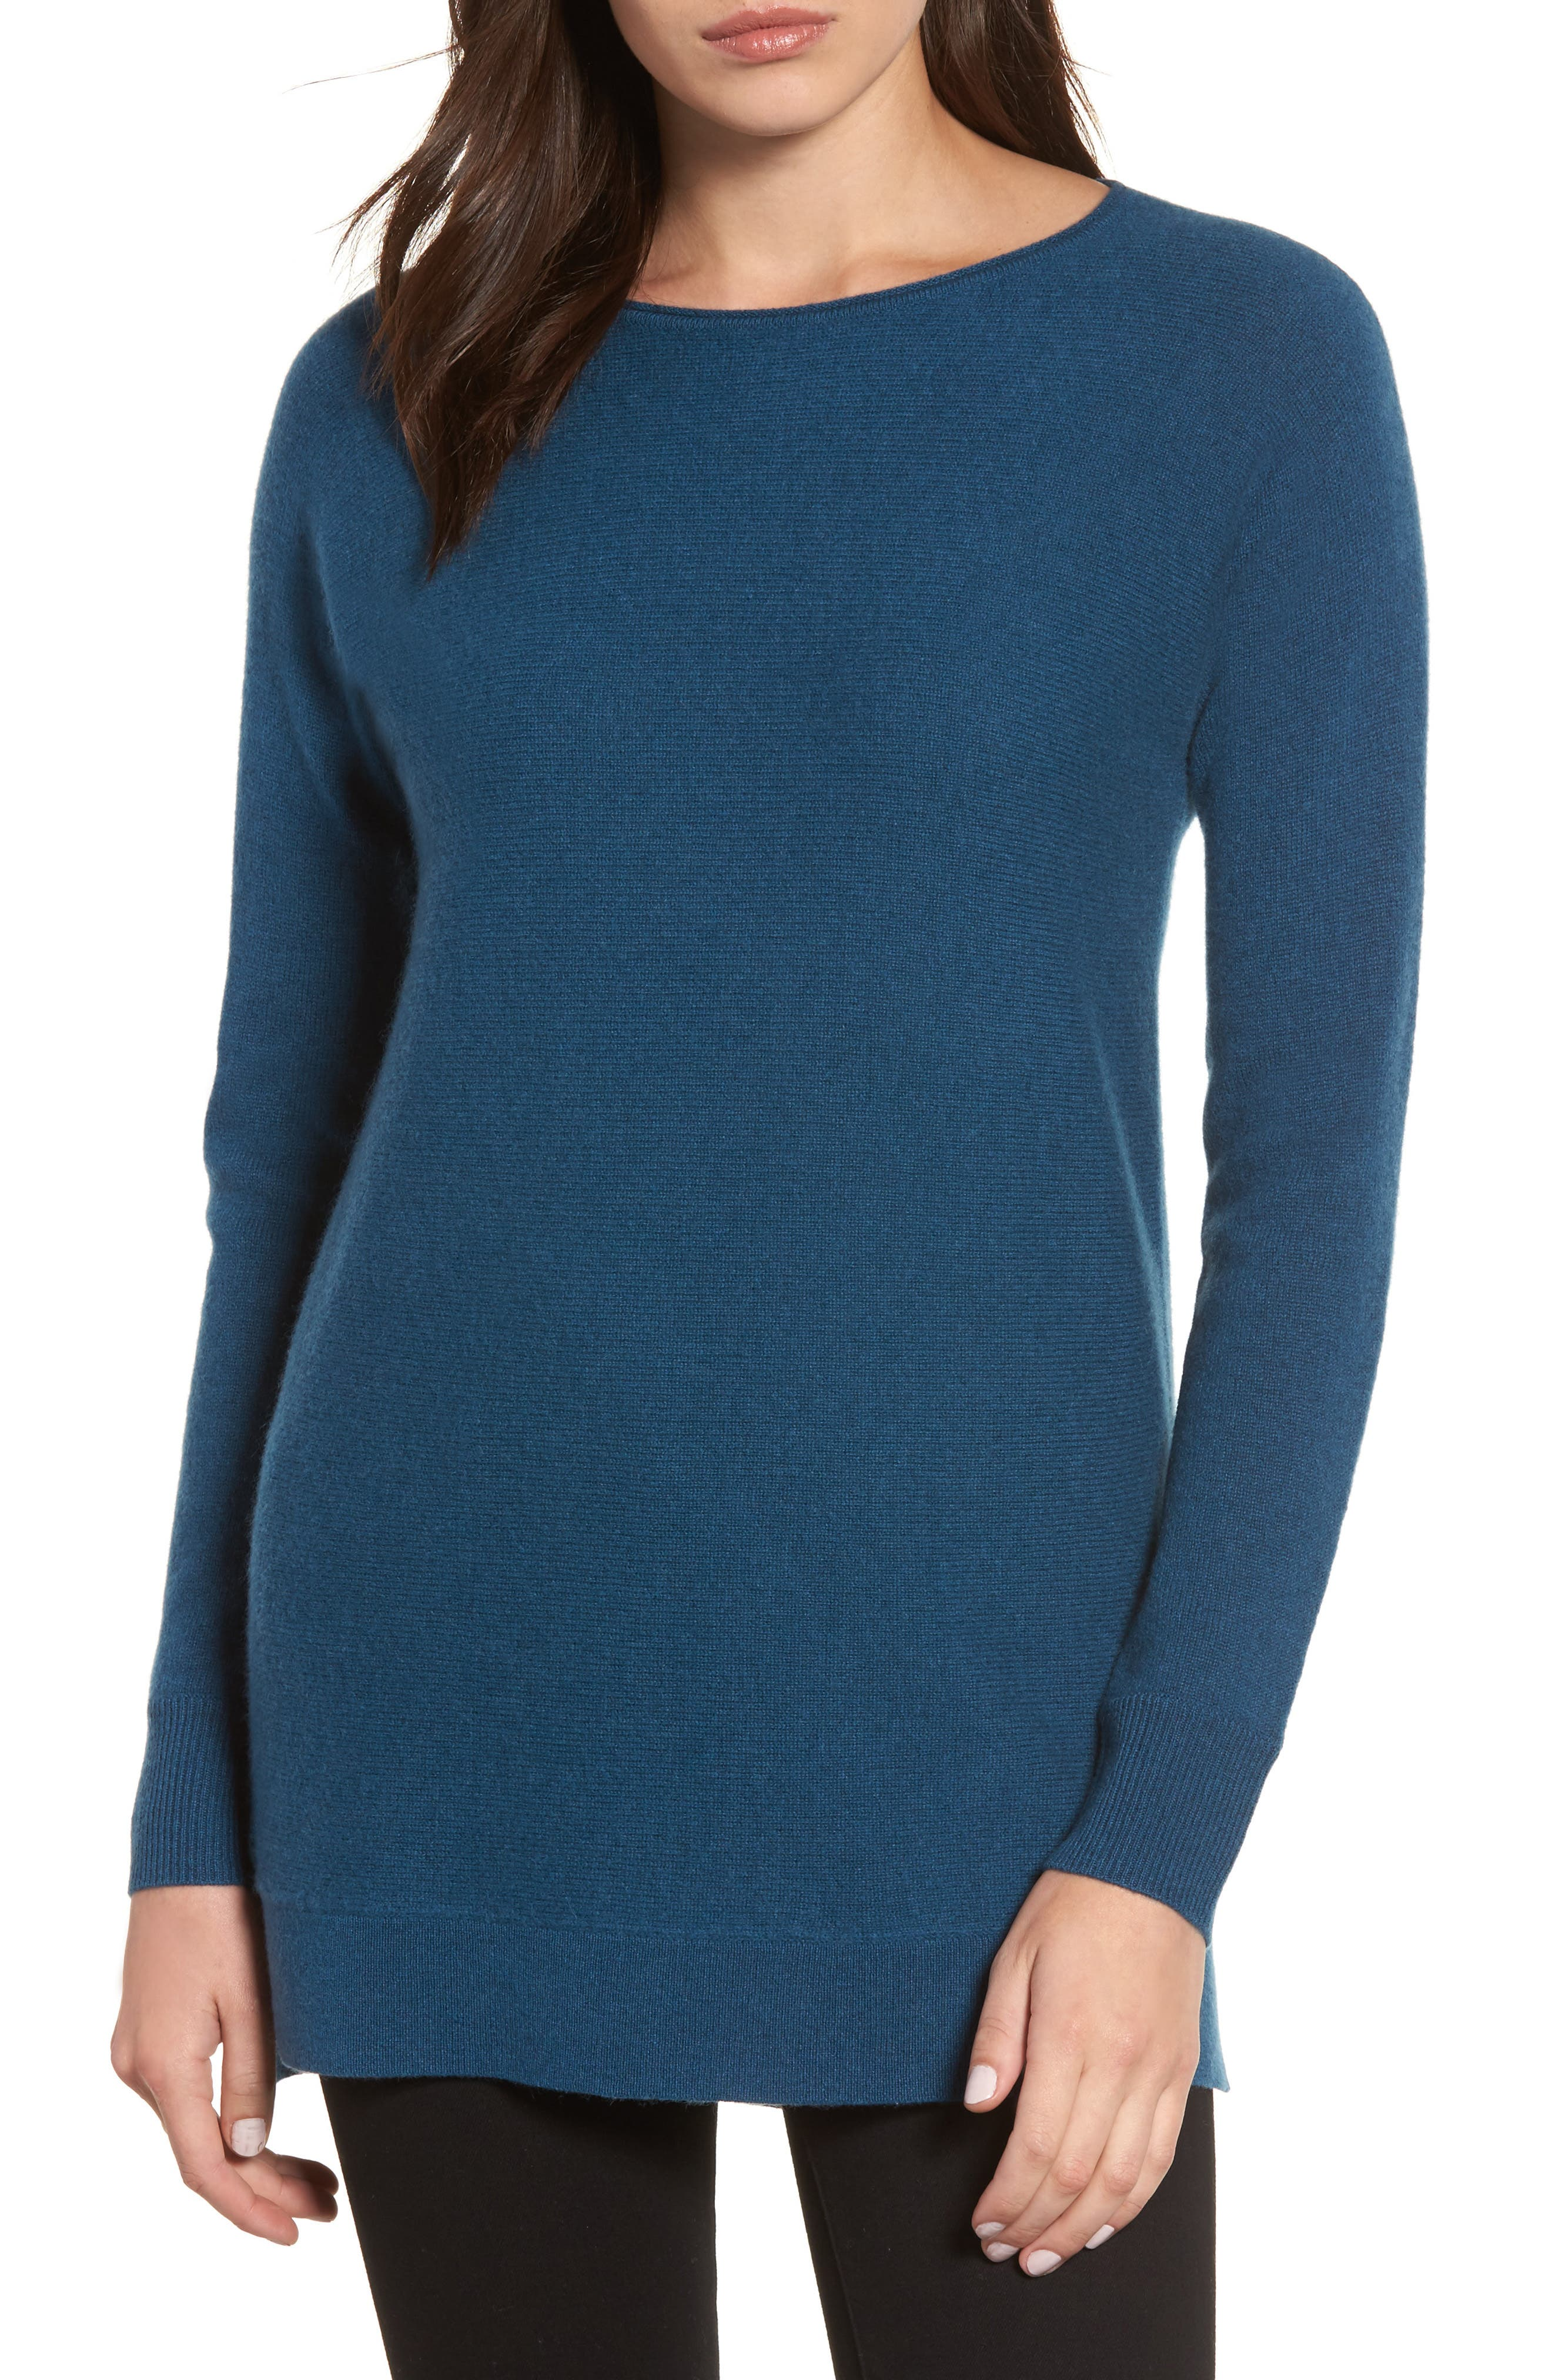 Alternate Image 1 Selected - Halogen® High/Low Wool & Cashmere Tunic Sweater (Regular & Petite)